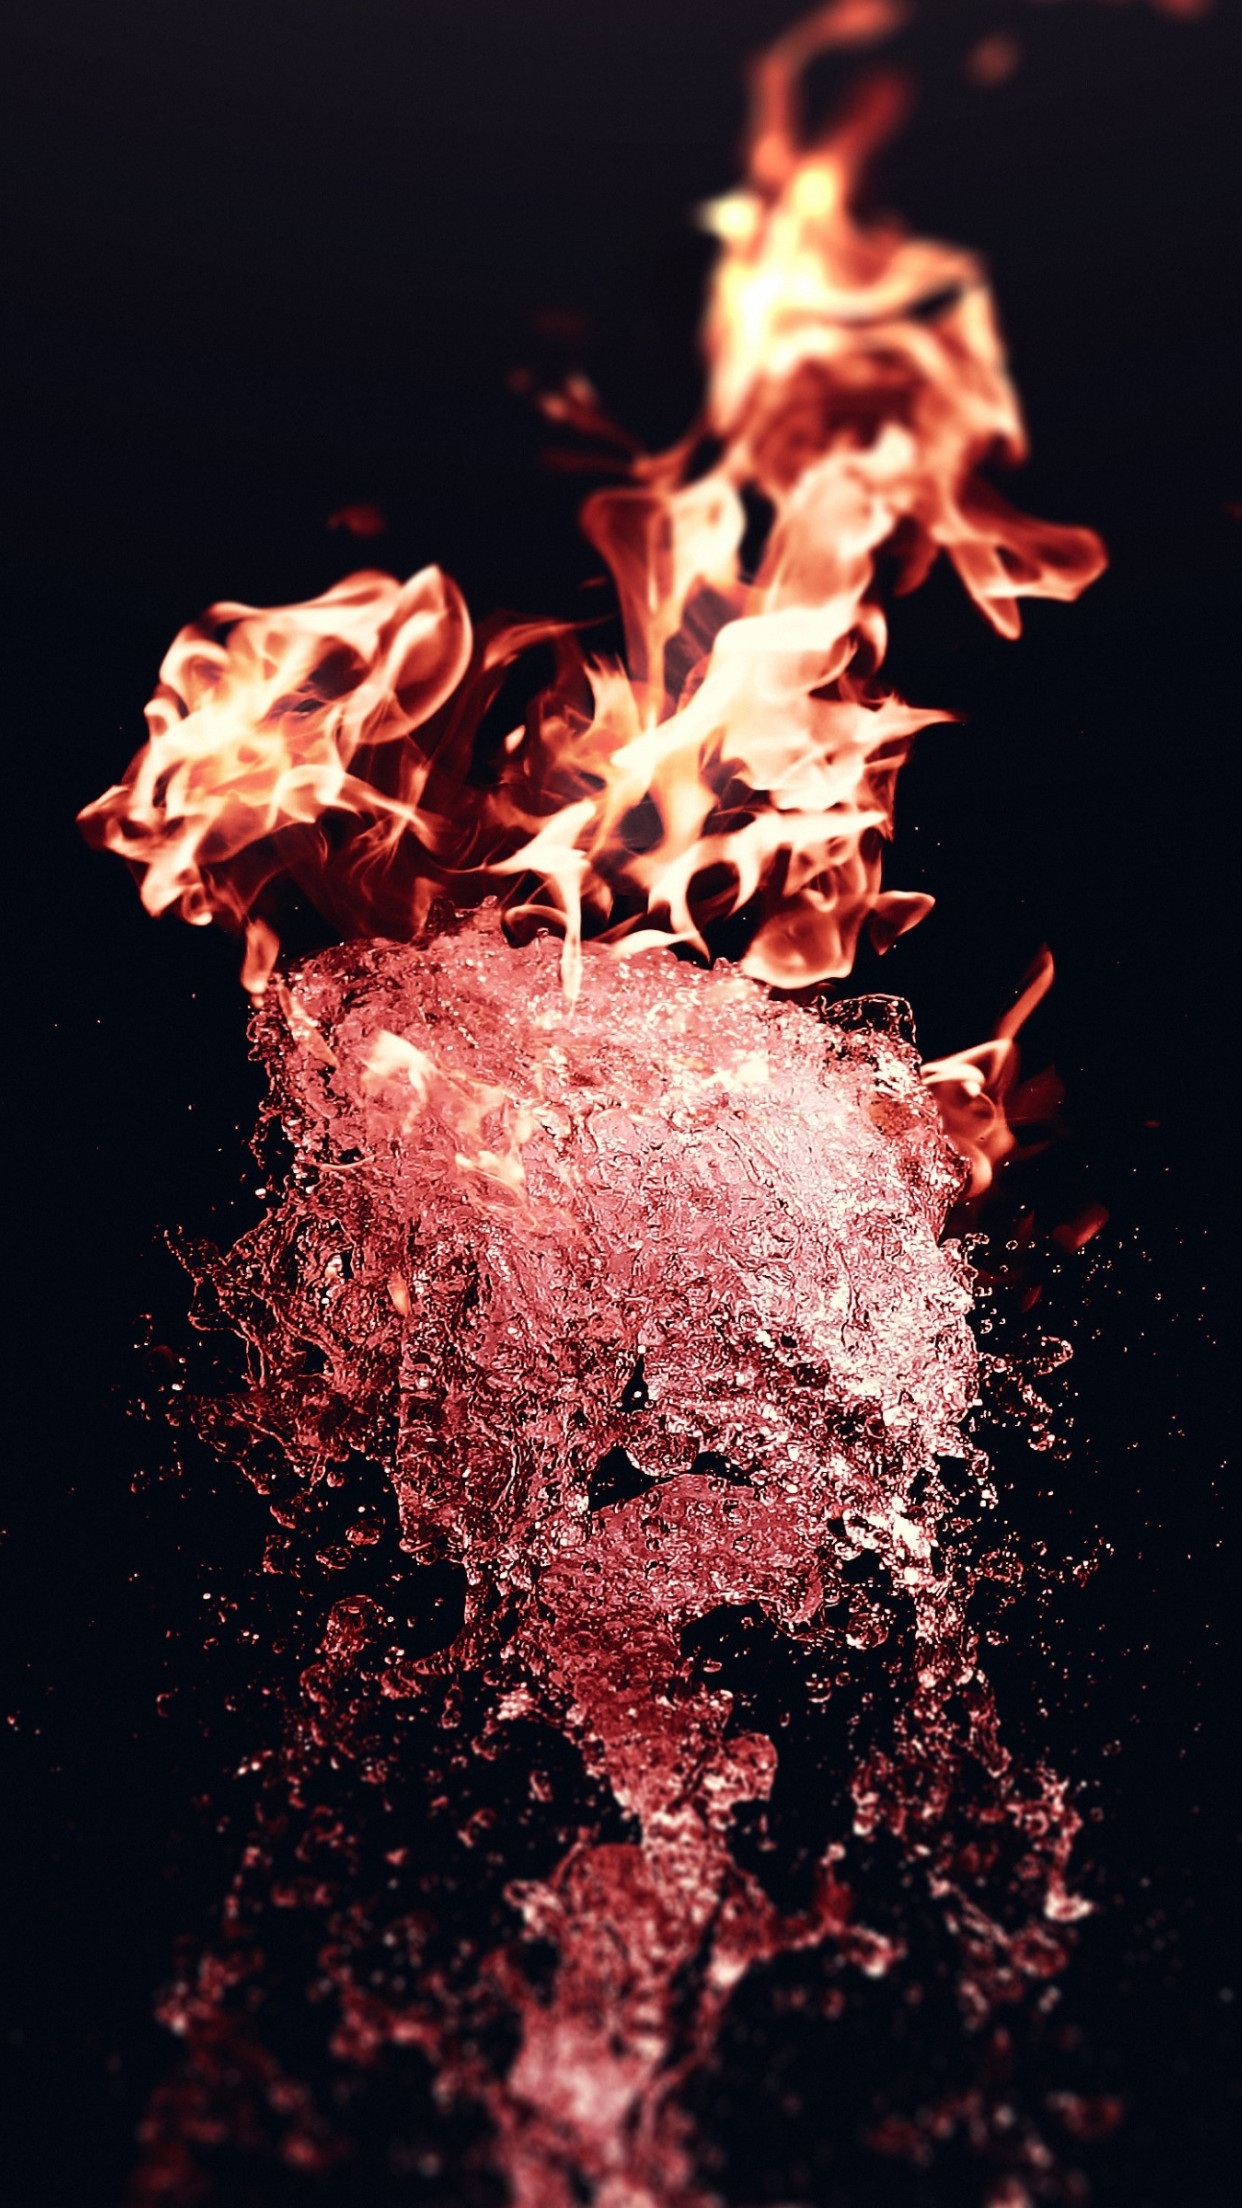 Fire vs Water wallpaper 1242x2208